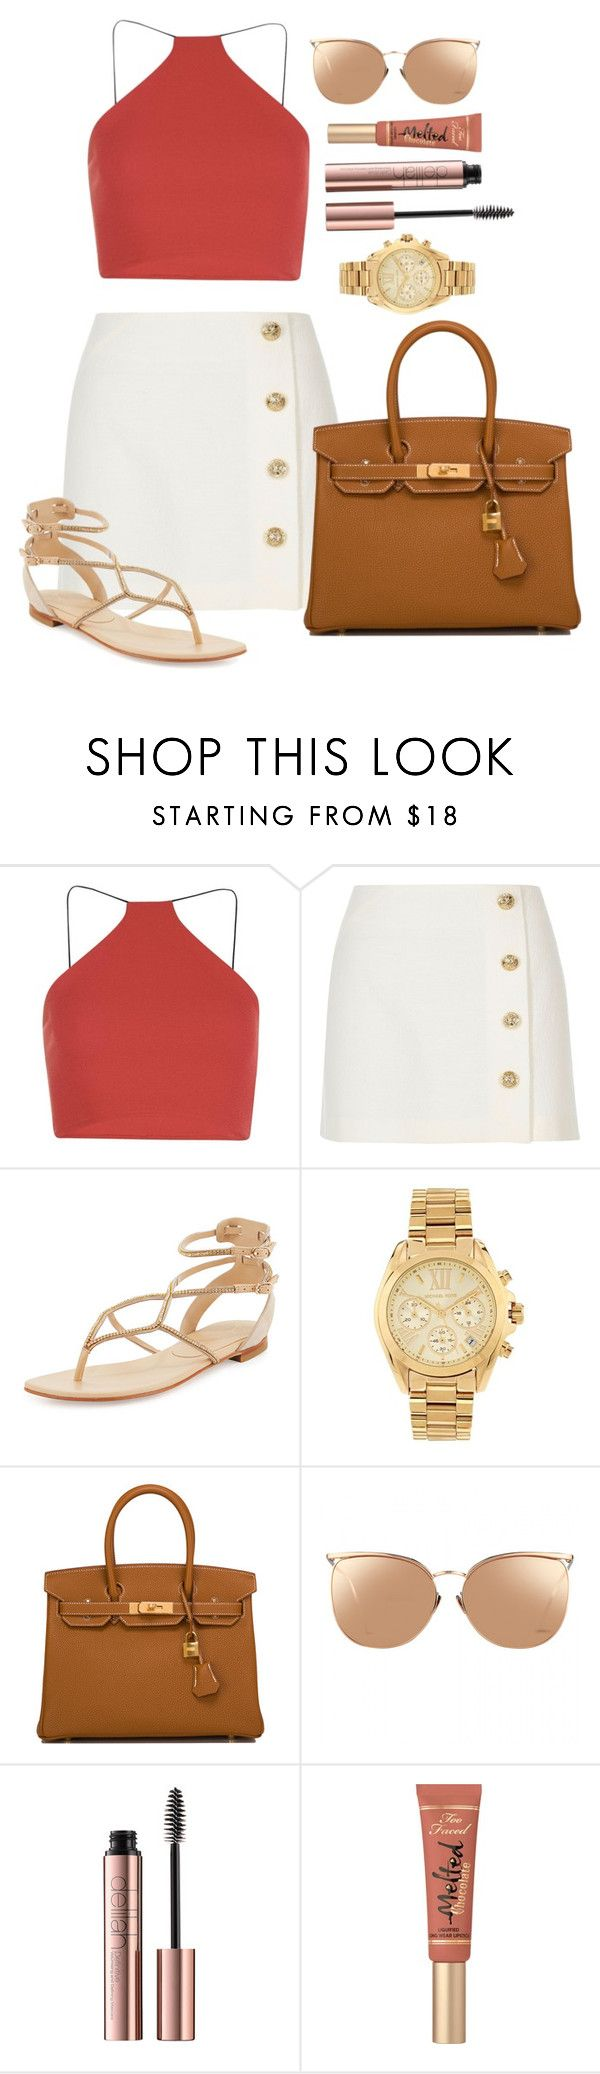 """Untitled #1574"" by fabianarveloc on Polyvore featuring Boohoo, River Island, Lola Cruz, Michael Kors, Hermès, Linda Farrow and Too Faced Cosmetics"